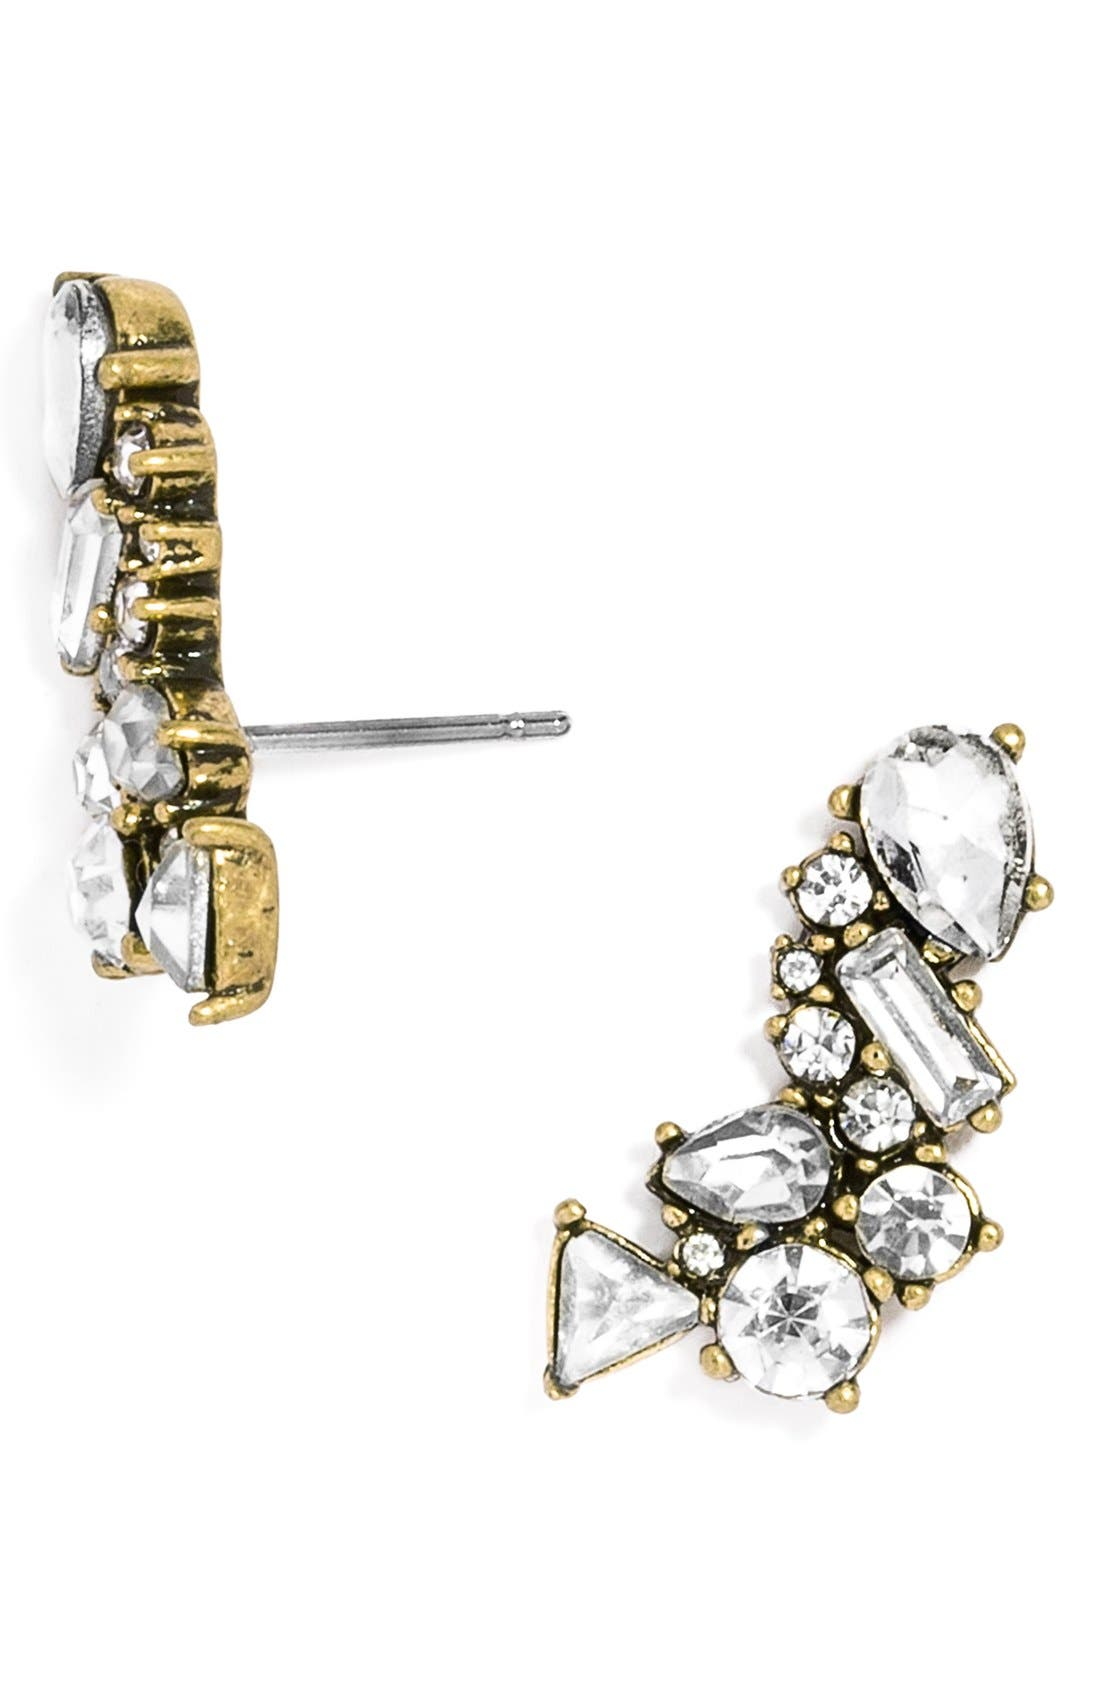 Main Image - BaubleBar Crystal Triangle Ear Crawlers